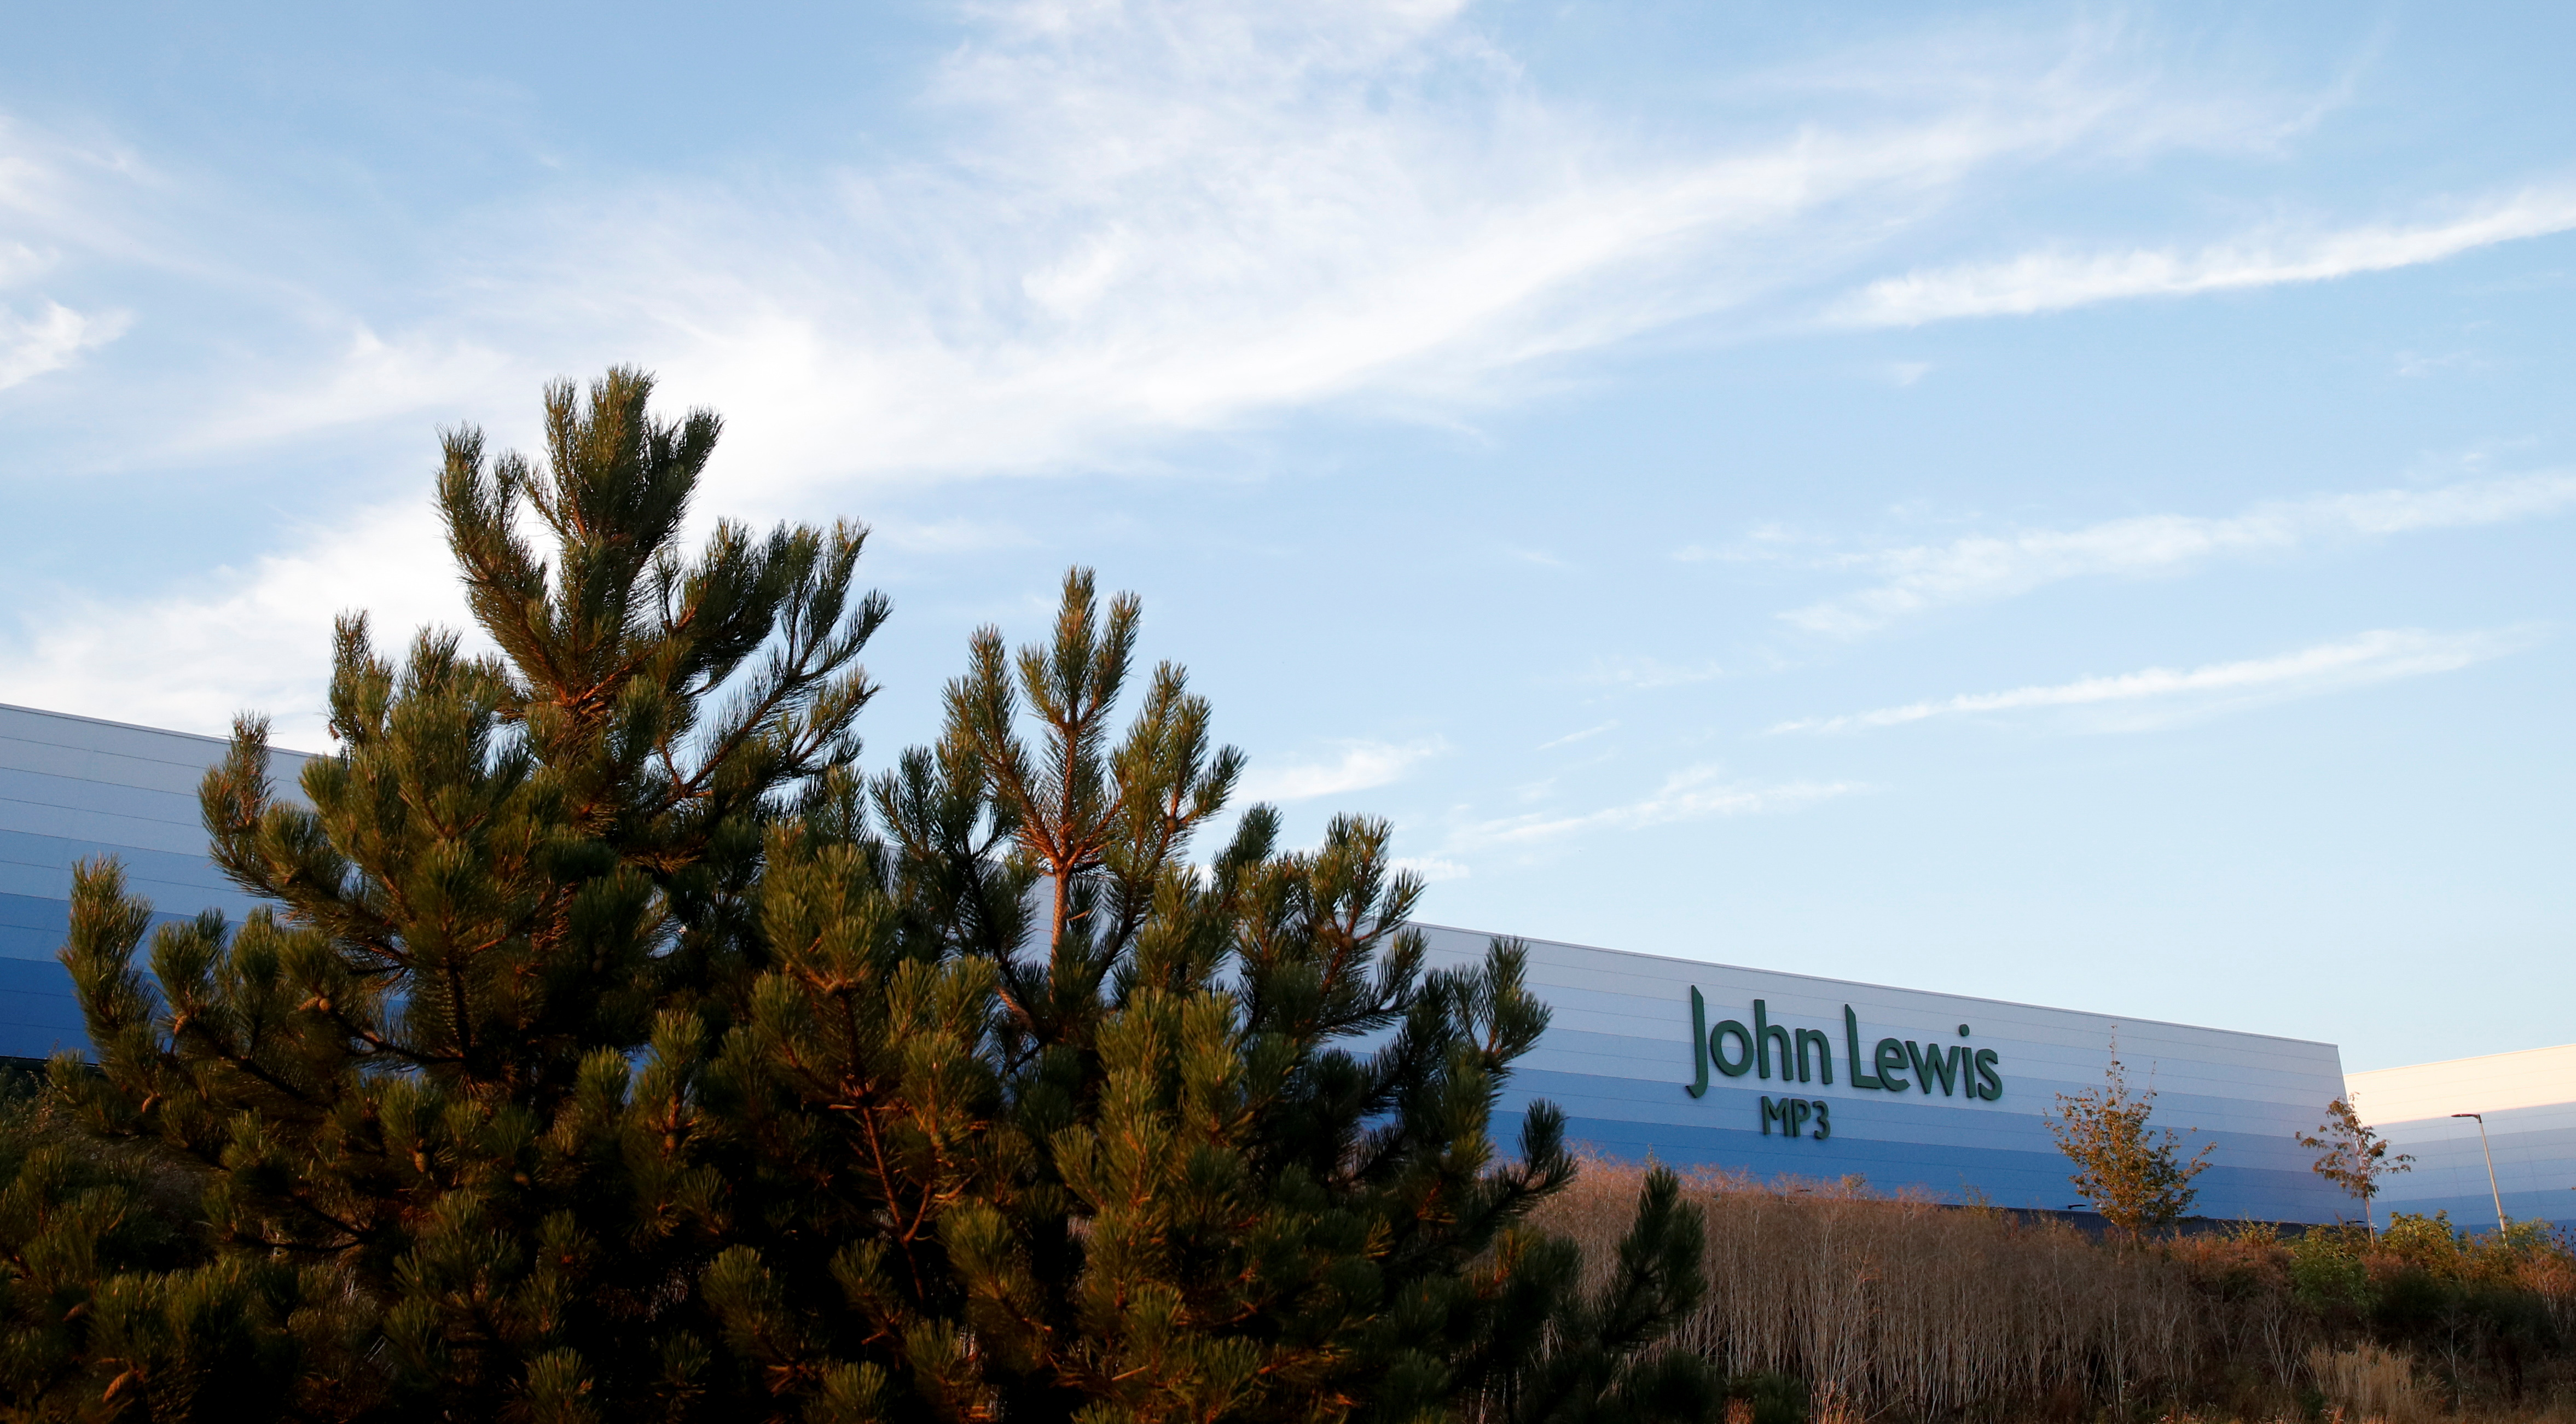 A John Lewis warehouse is pictured at Magna Park in Milton Keynes, Britain, September 26, 2021. REUTERS/Andrew Boyers